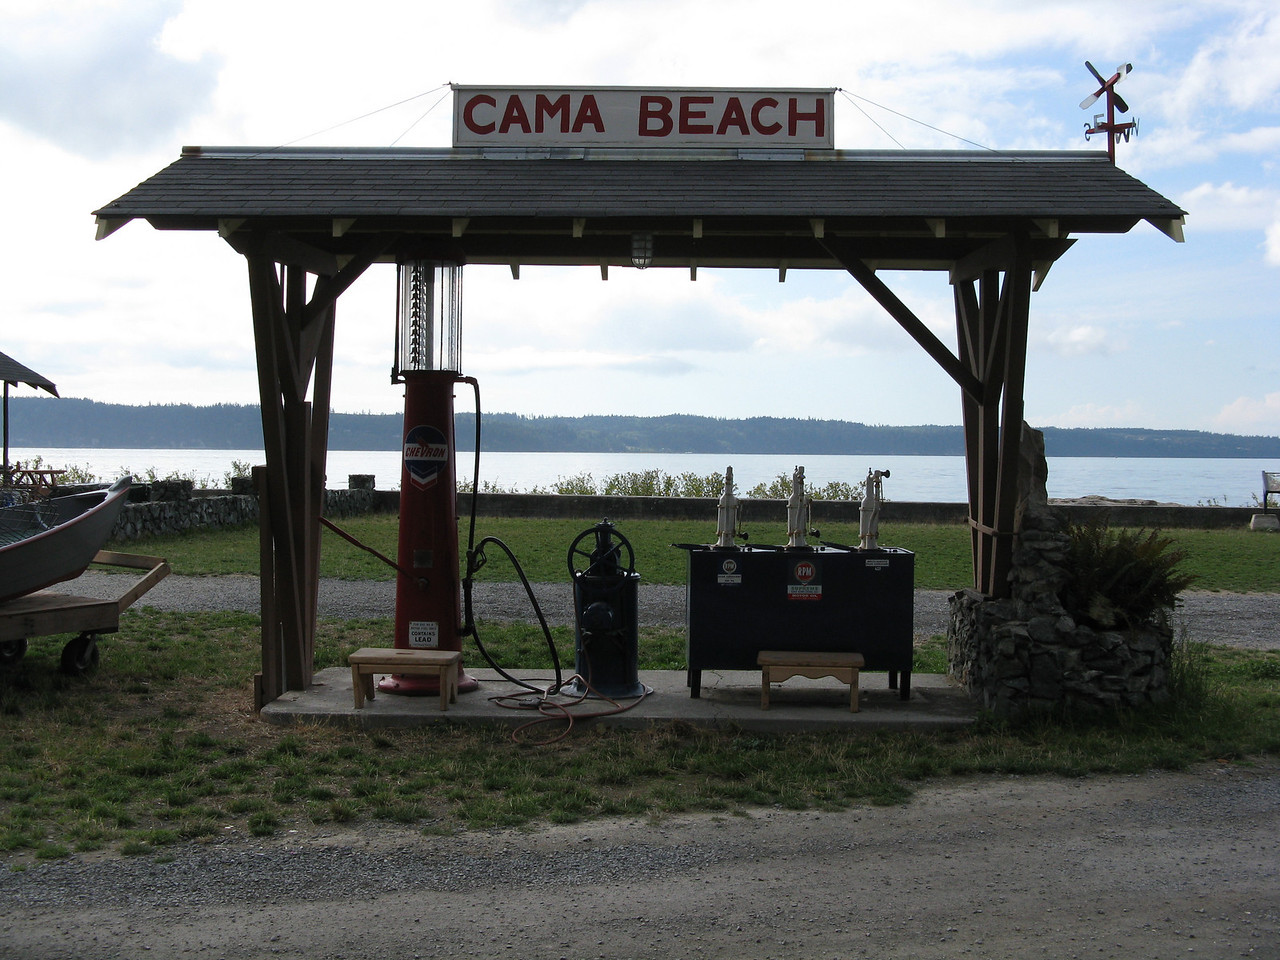 An antique gas pump with pumping handle,  back lit by the clouds and water.